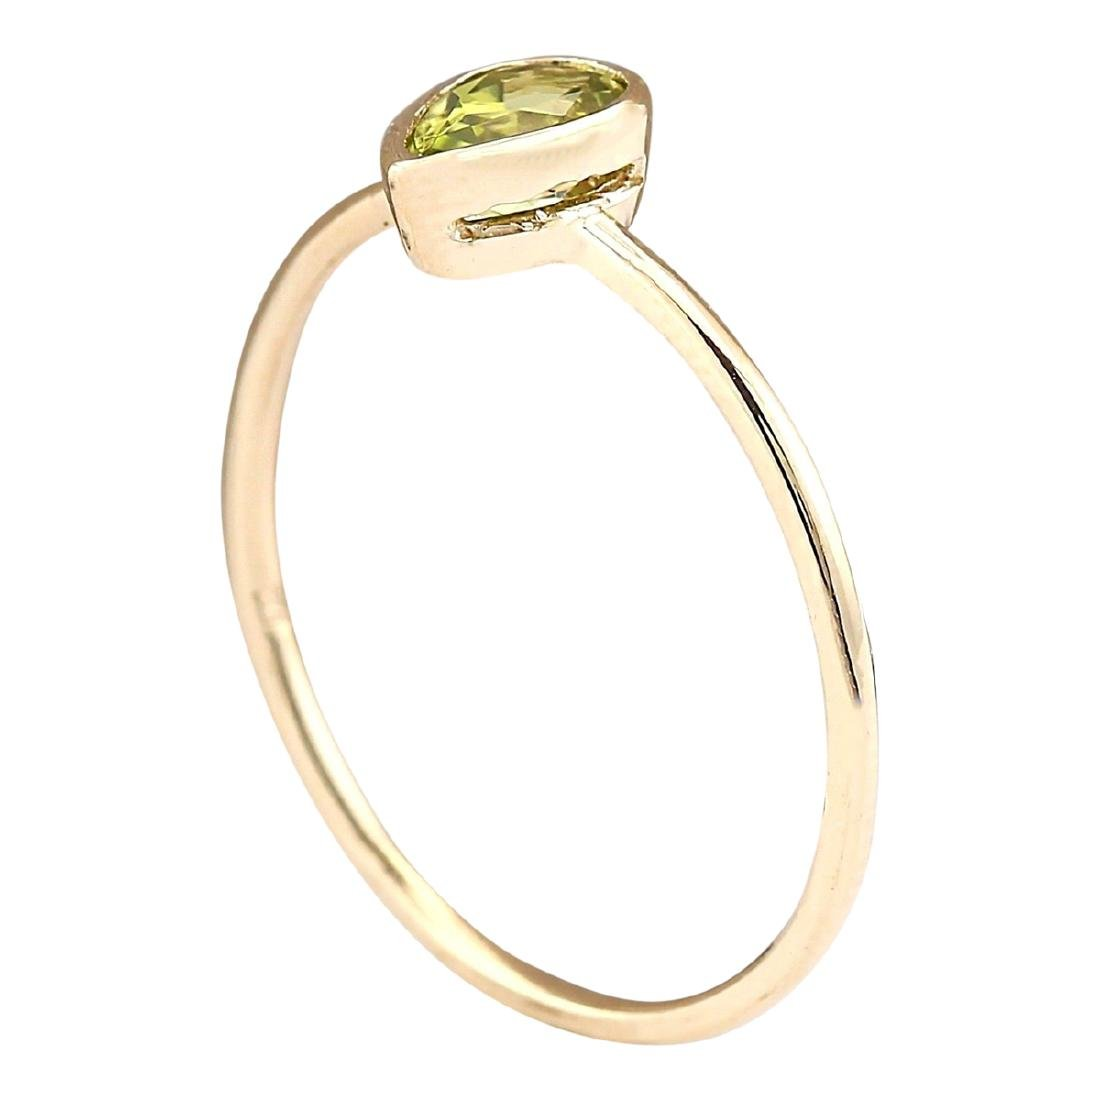 0.50 CTW Natural Peridot Ring In 18K Yellow Gold - 3